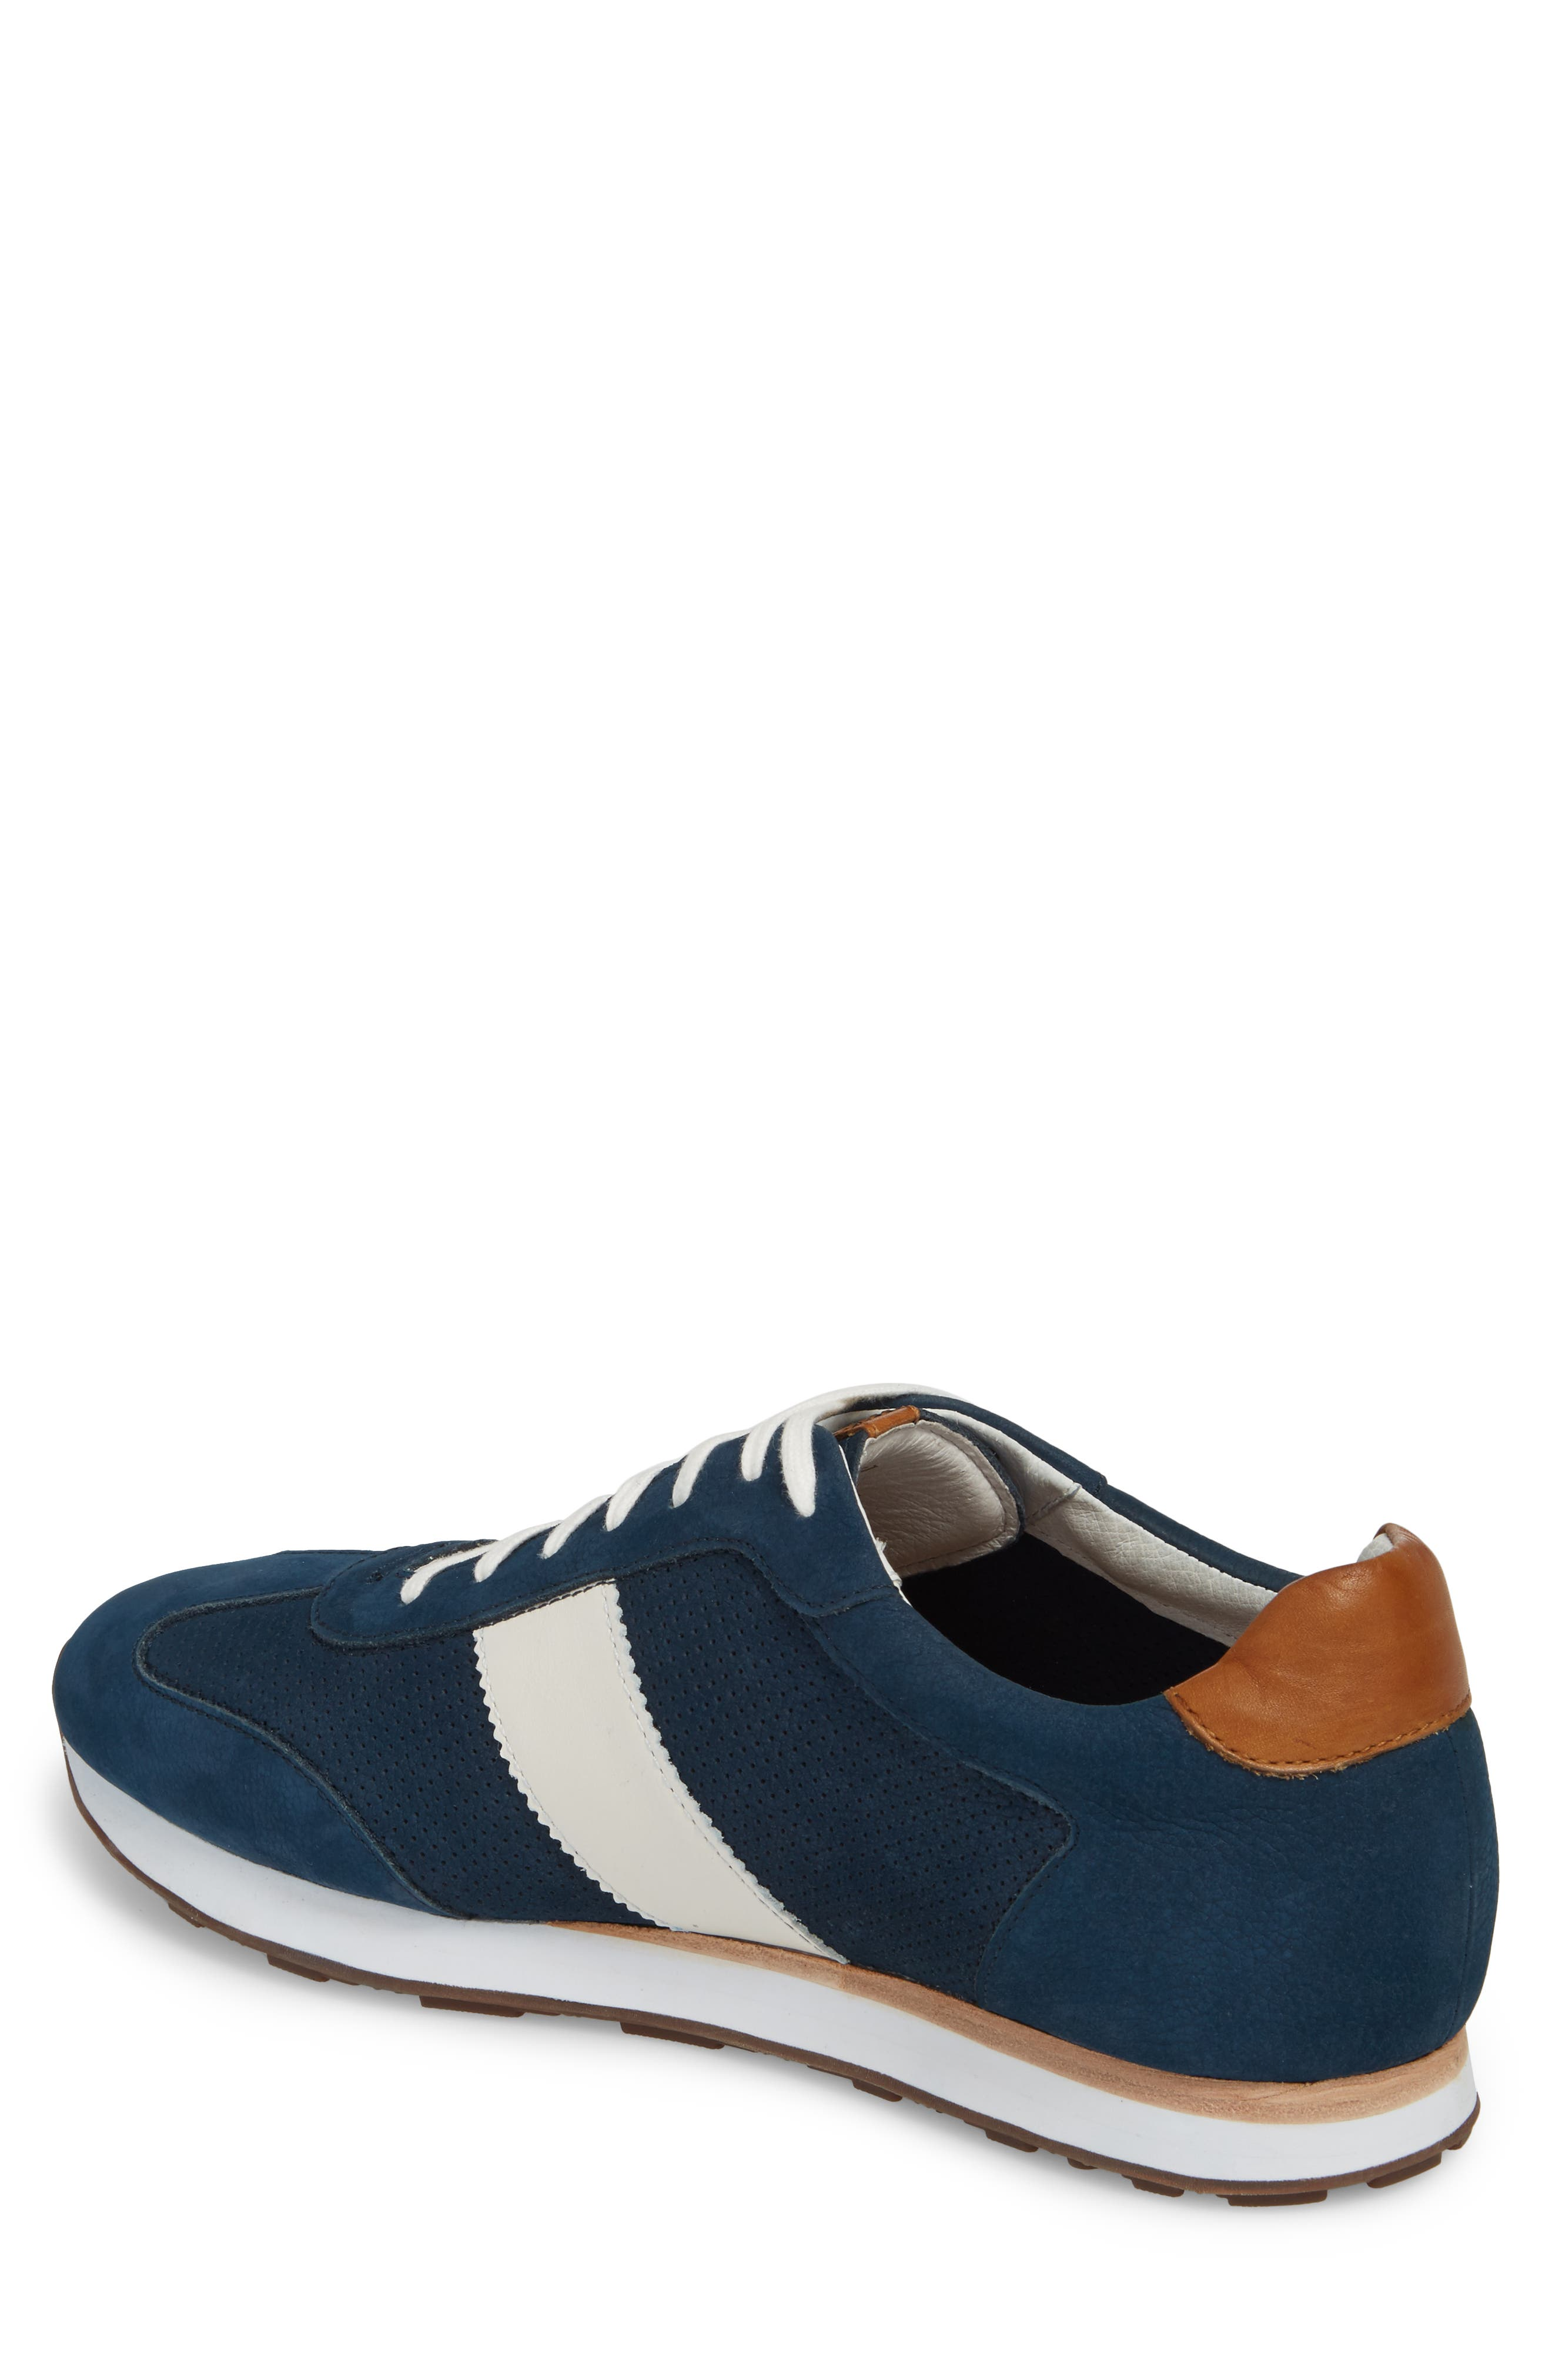 Malek Perforated Low Top Sneaker,                             Alternate thumbnail 2, color,                             Navy Nubuck Leather